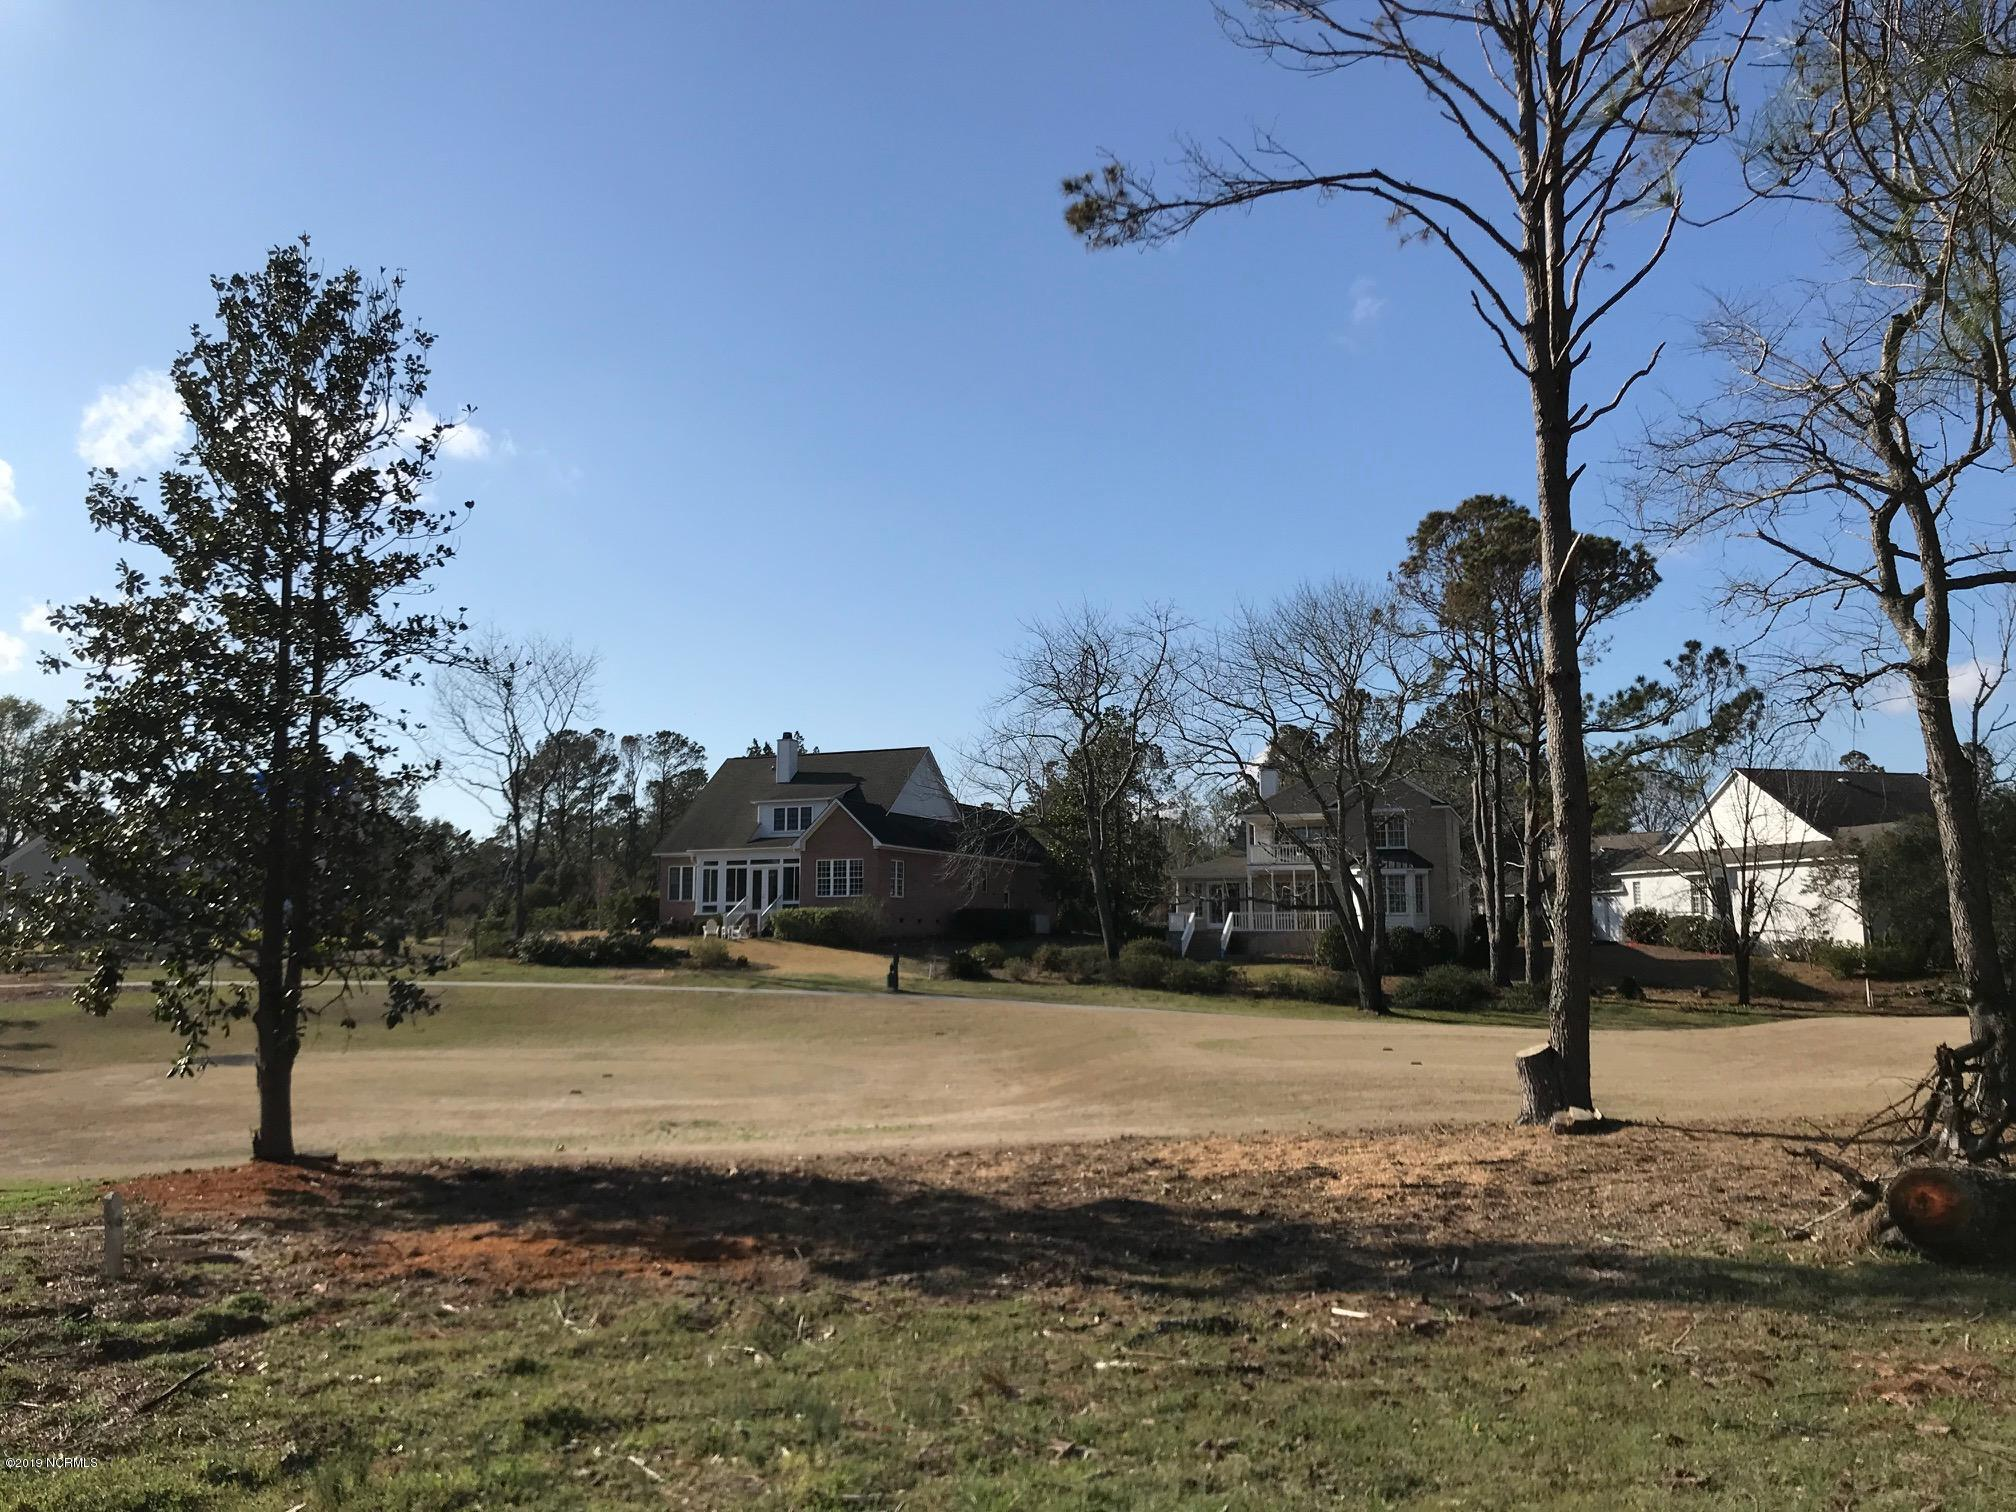 422 White Columns Way, Wilmington, North Carolina 28411, 3 Bedrooms Bedrooms, 7 Rooms Rooms,2 BathroomsBathrooms,Single family residence,For sale,White Columns,100151610